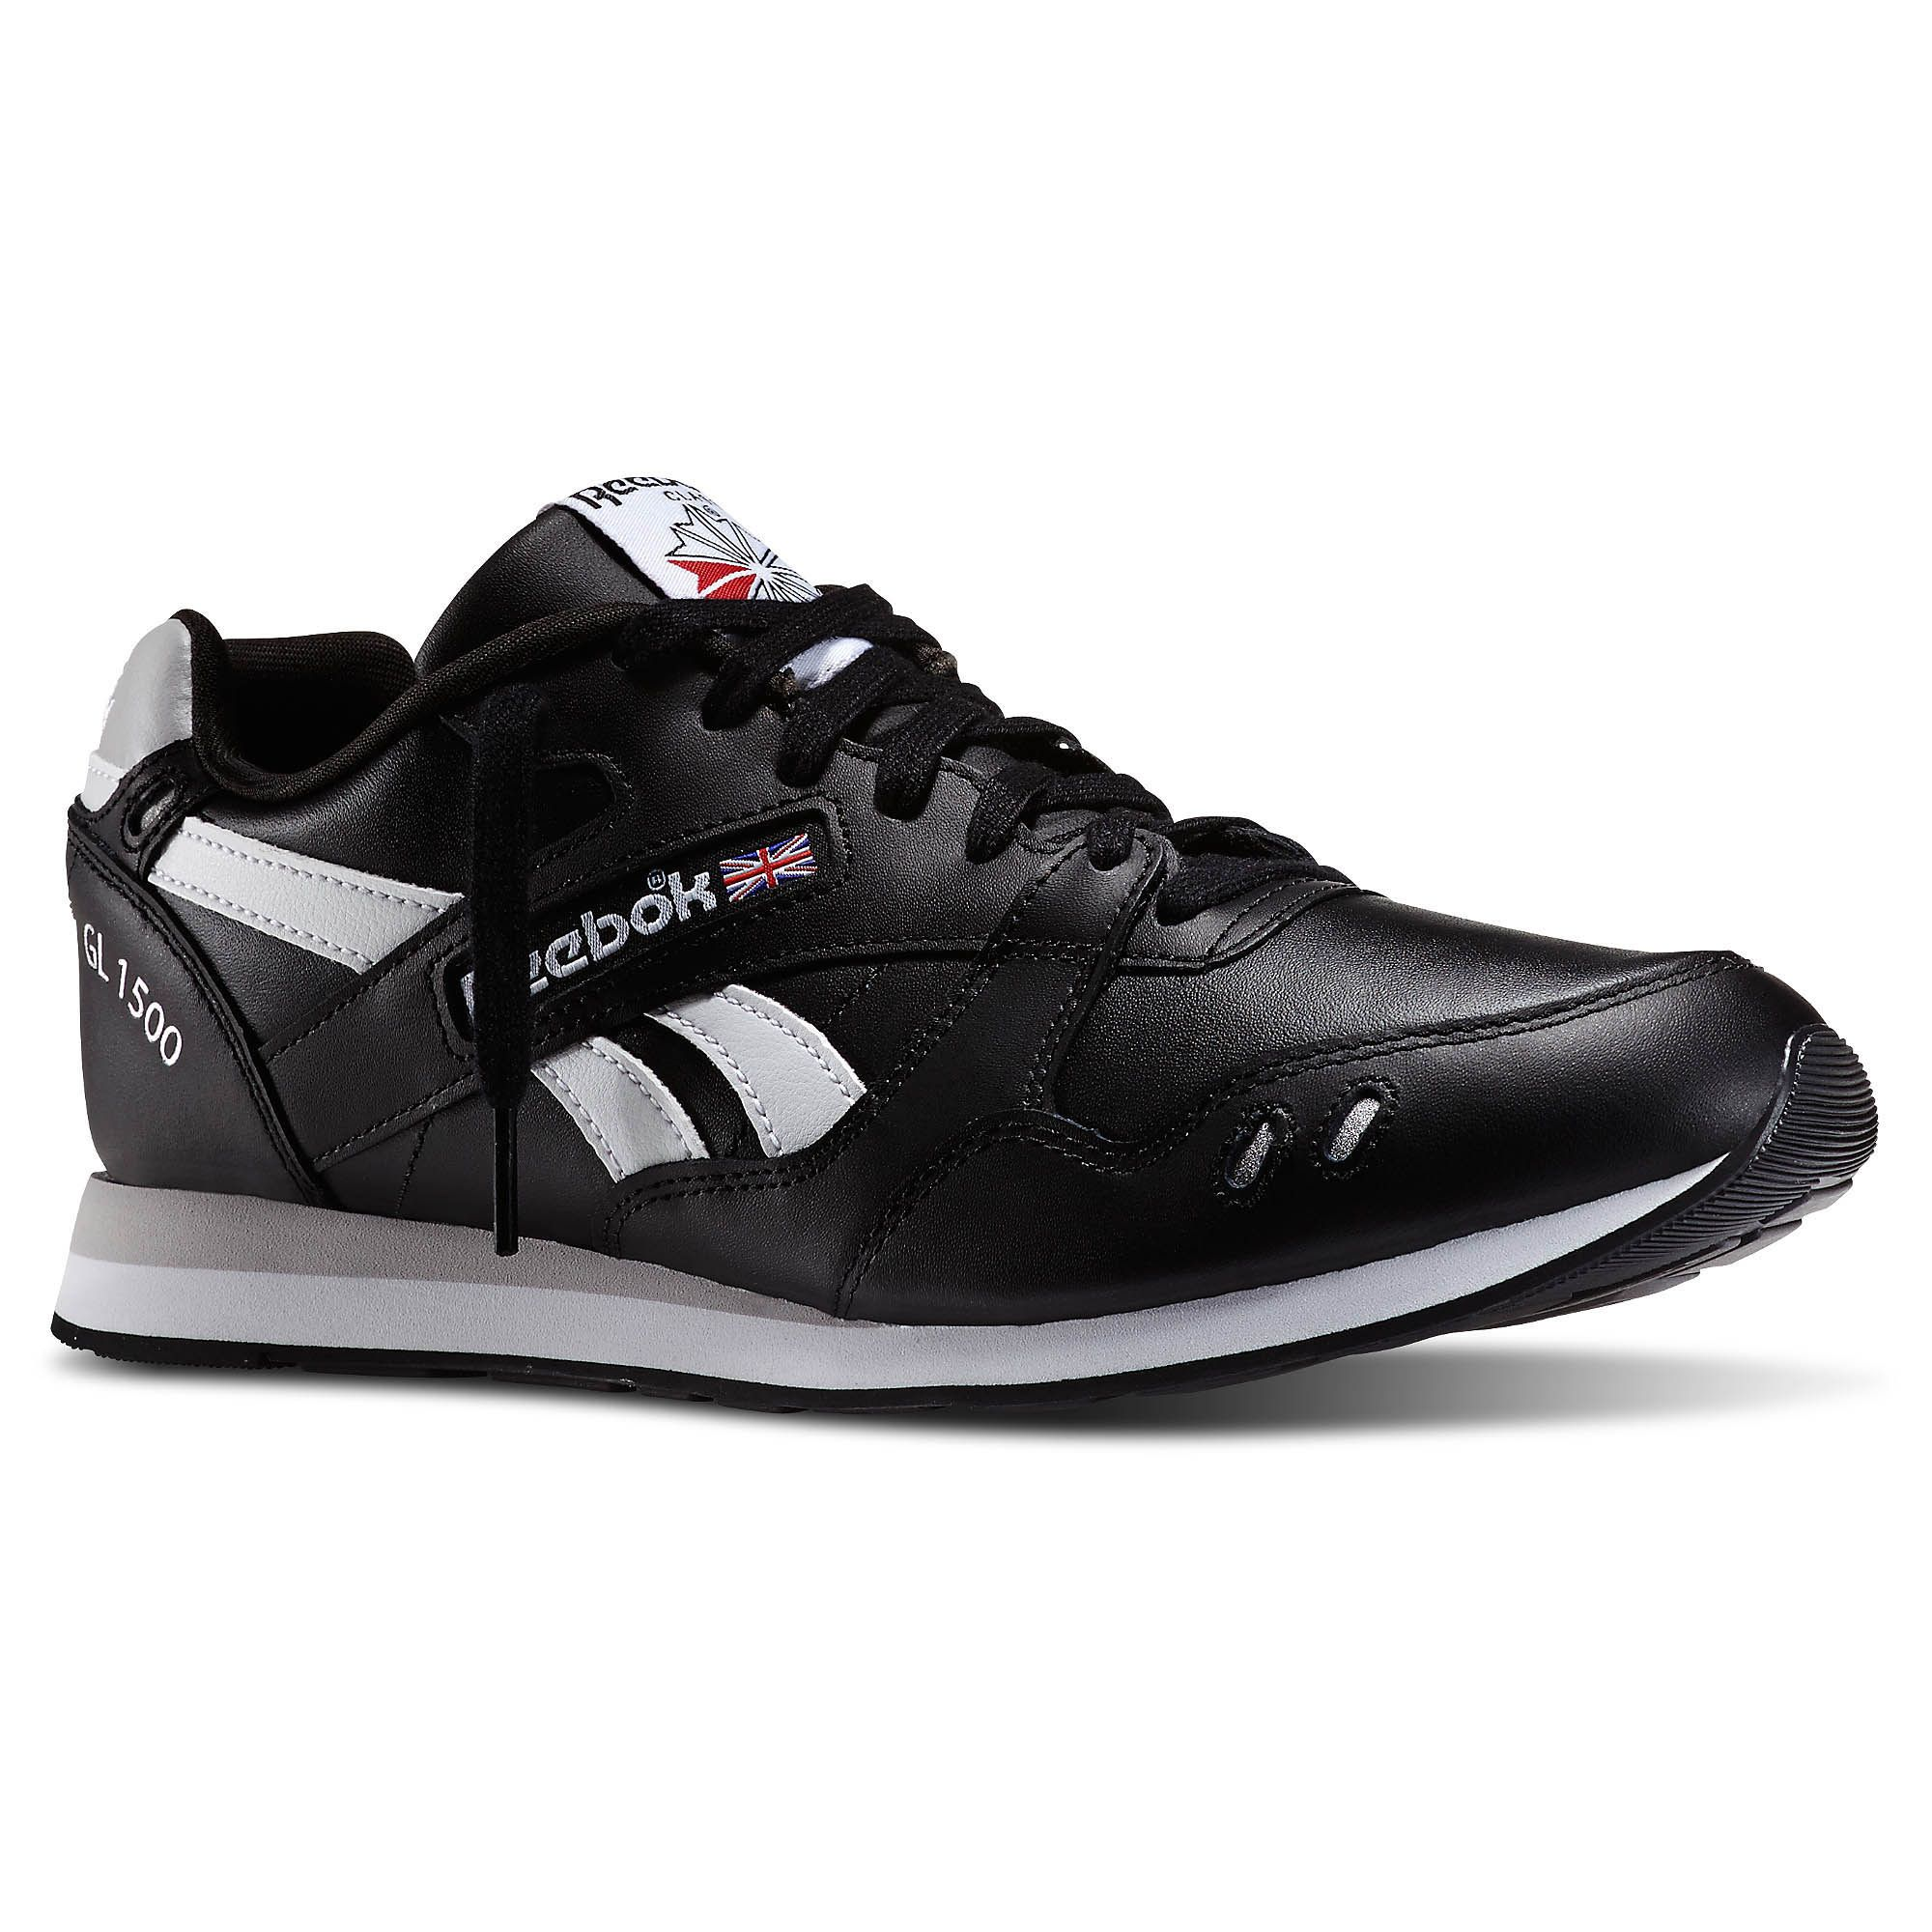 Reebok-Sports-shoes-and-running-shoes-for-men (19)